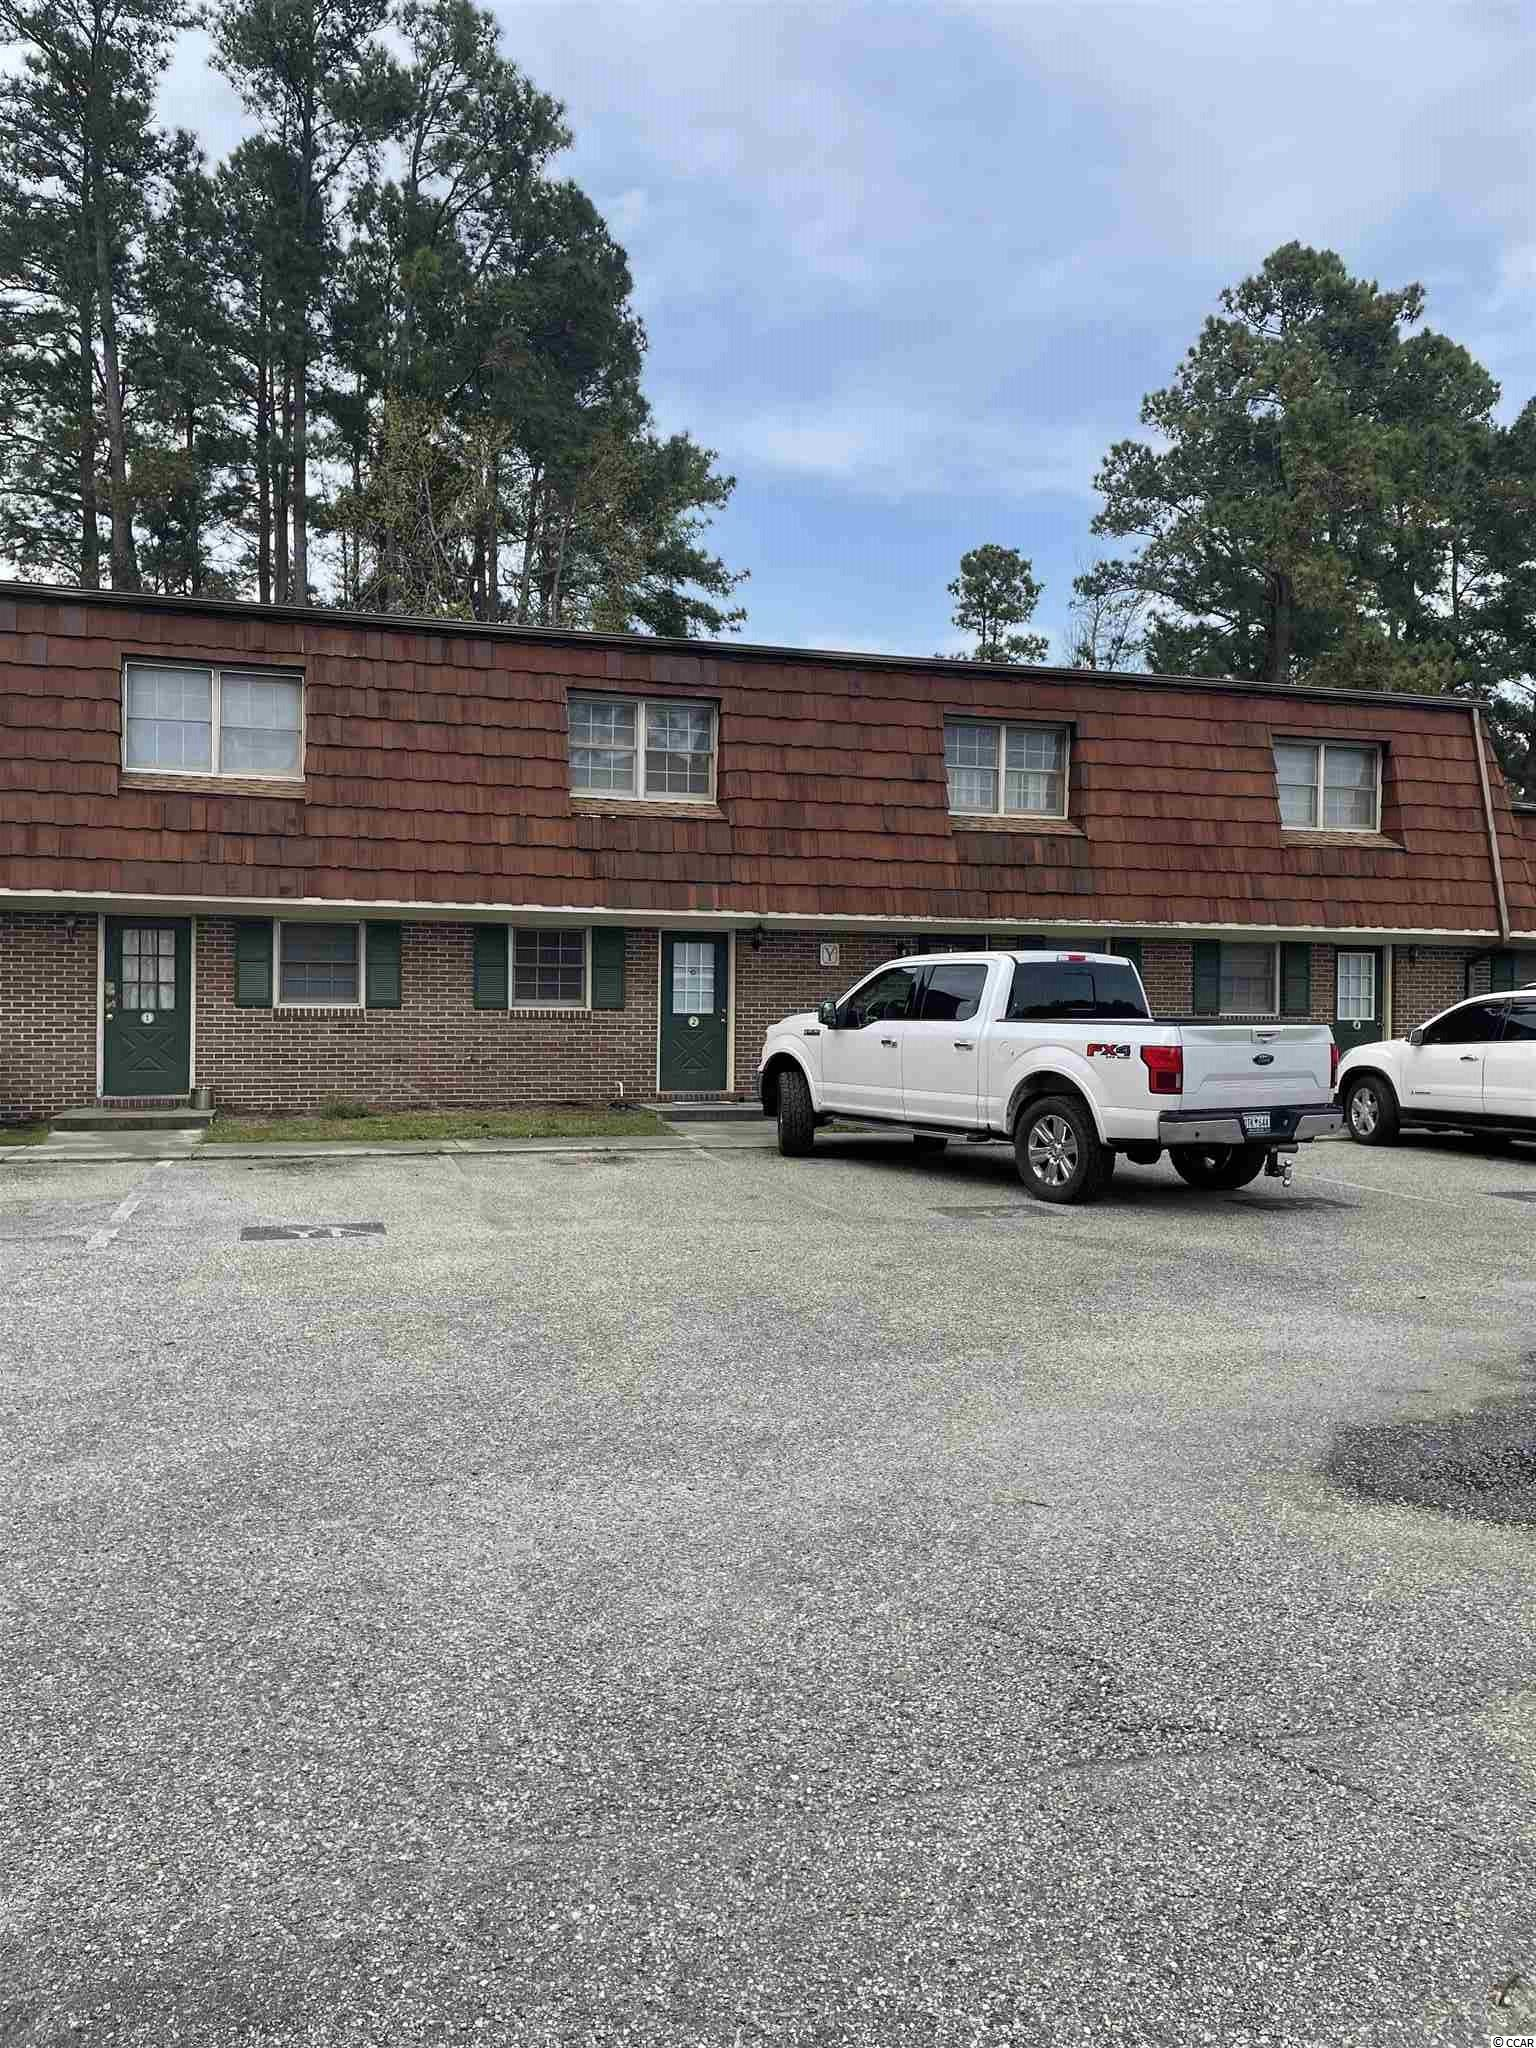 Townhouse located with in walking distance of Coastal Carolina University. @ bedroom 1 full bath 1 half bath. Vinyl tile floors, laundry area in the villa, extra storage,...... great location! Square footage is approximate and not guaranteed. Buyers responsible for verification.